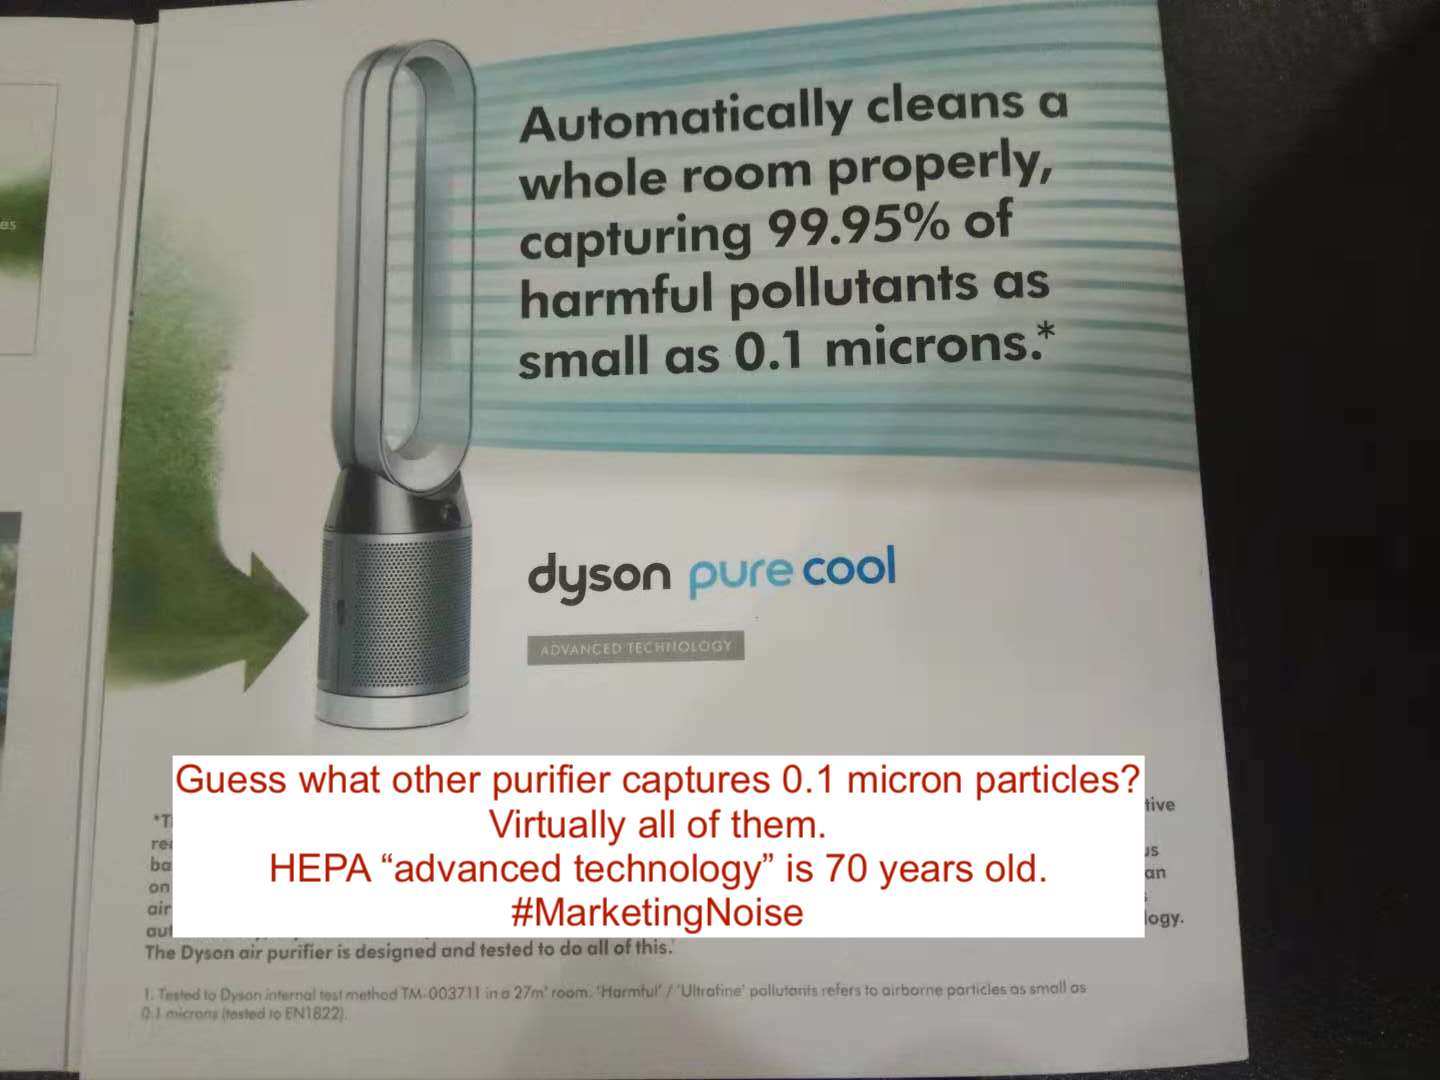 Dyson states that their air purifiers are special